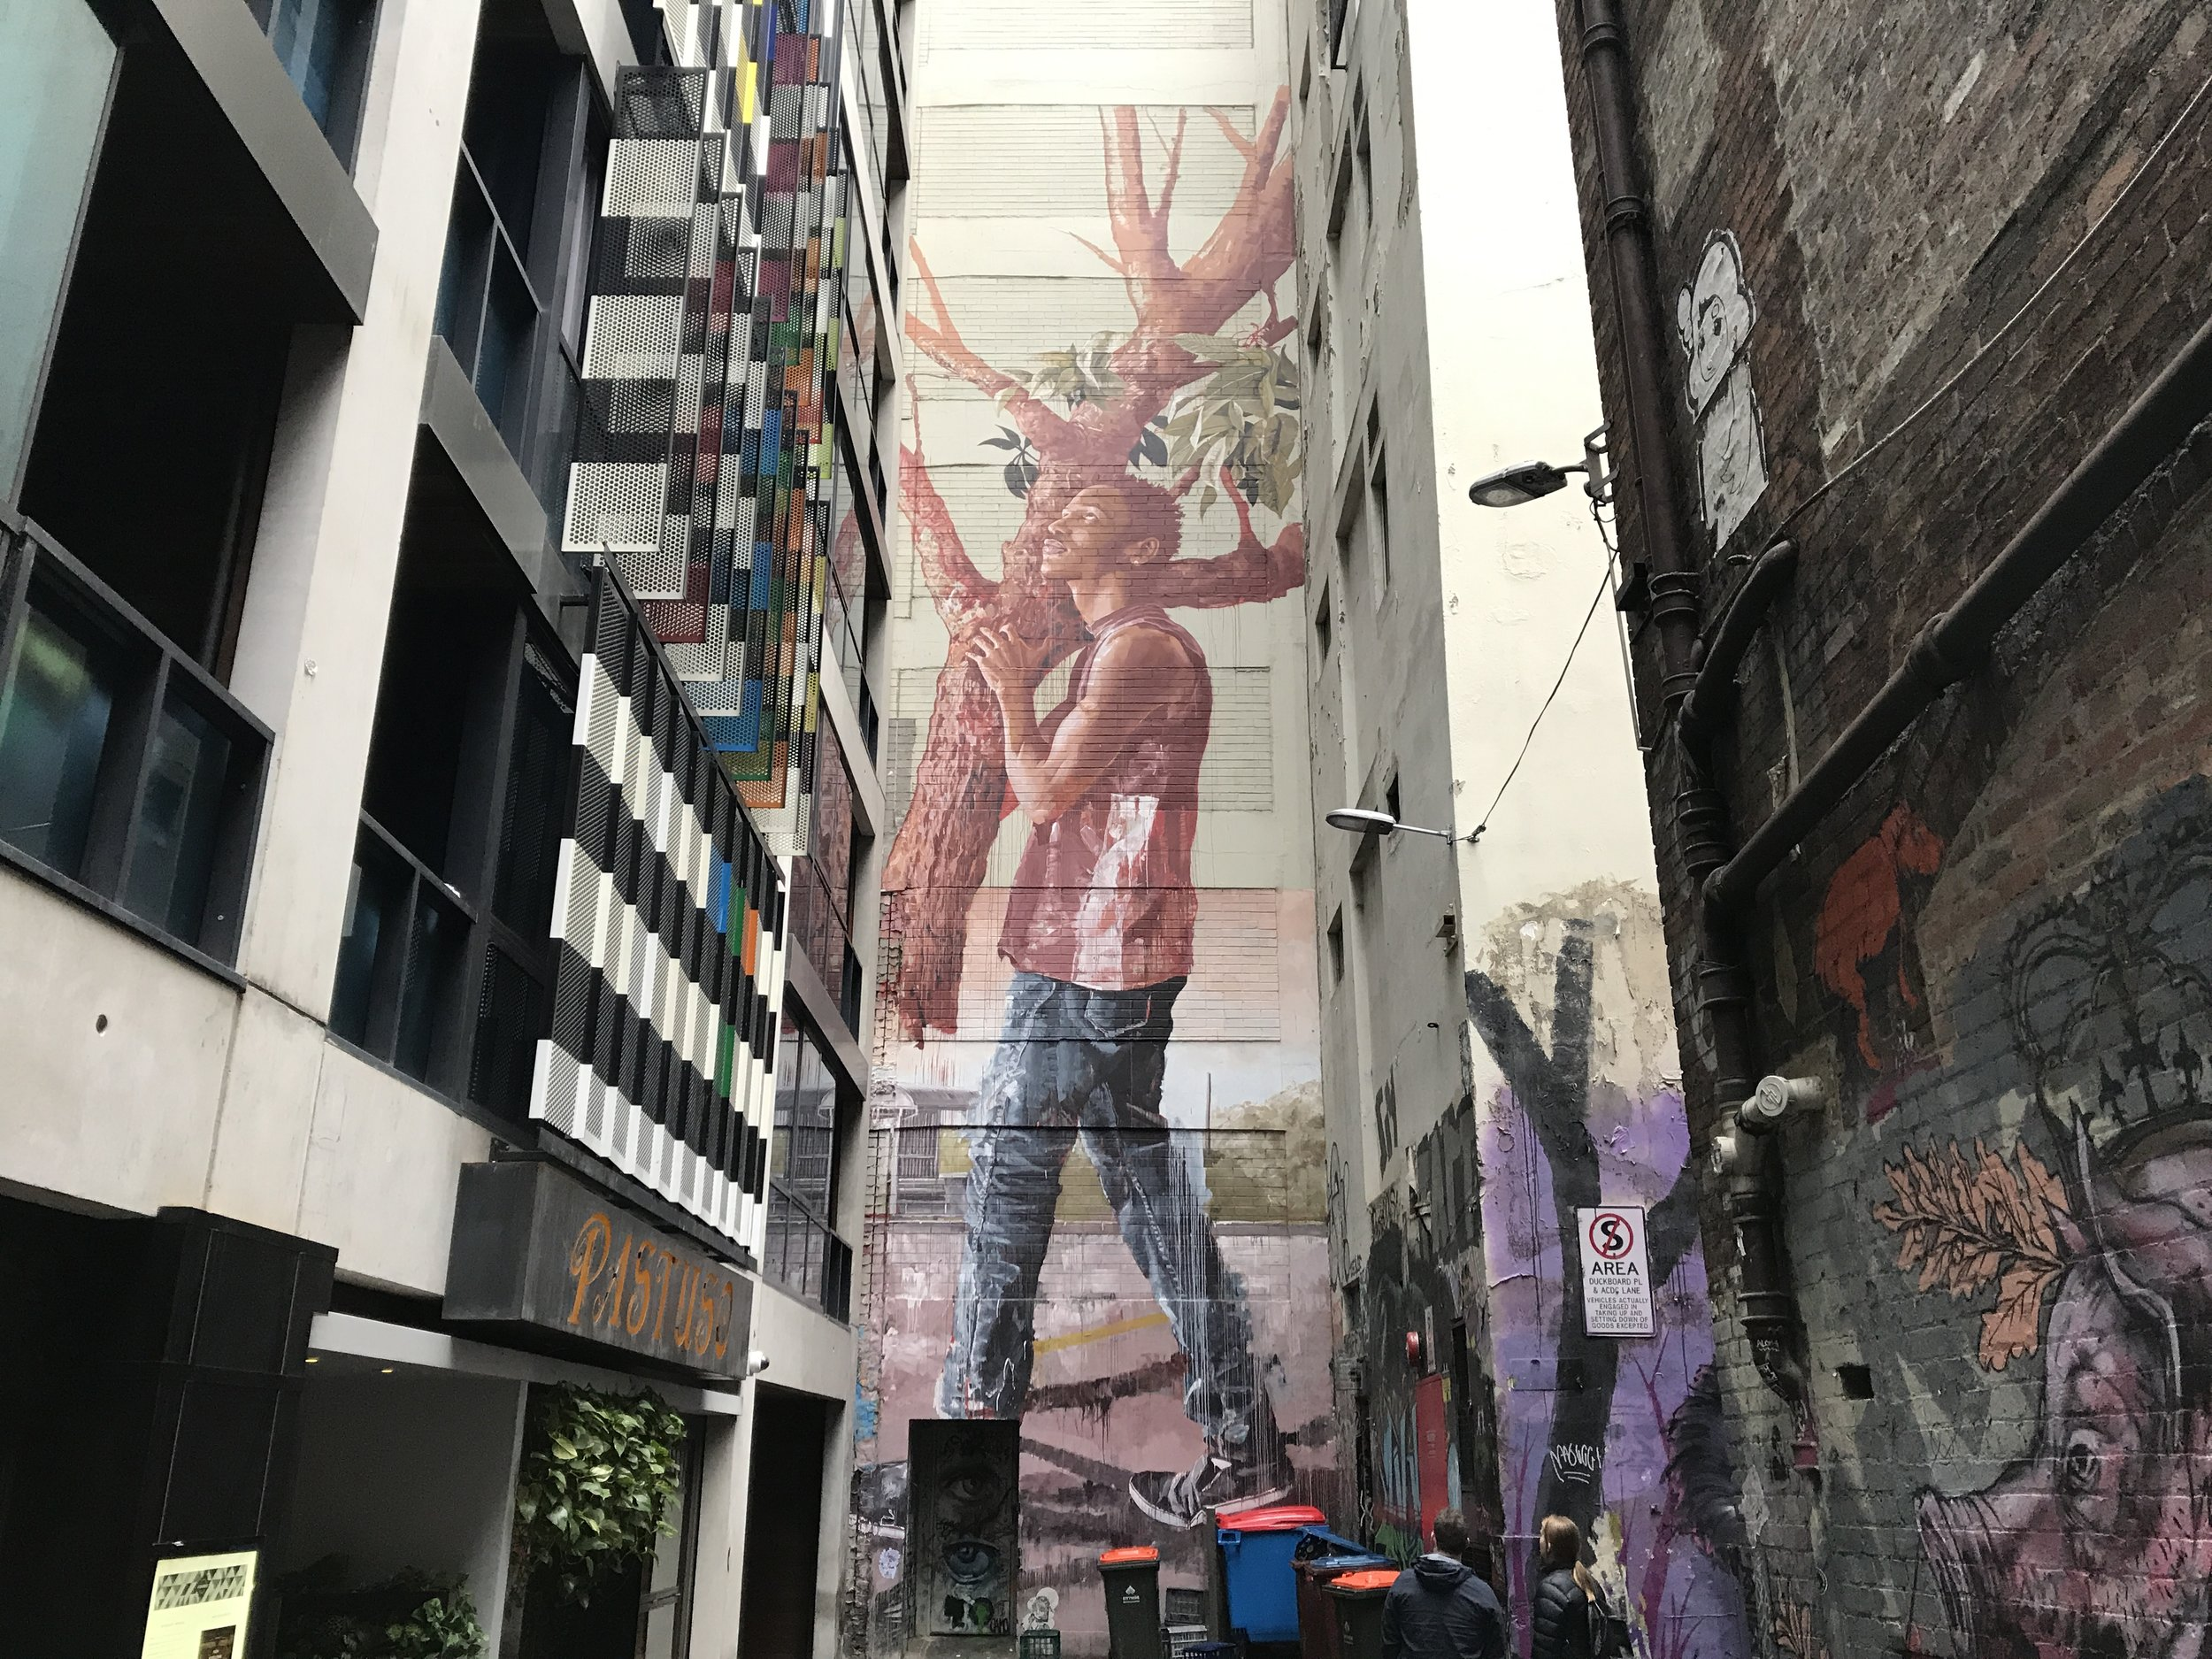 Melbourne street art by The Doubtful Traveller